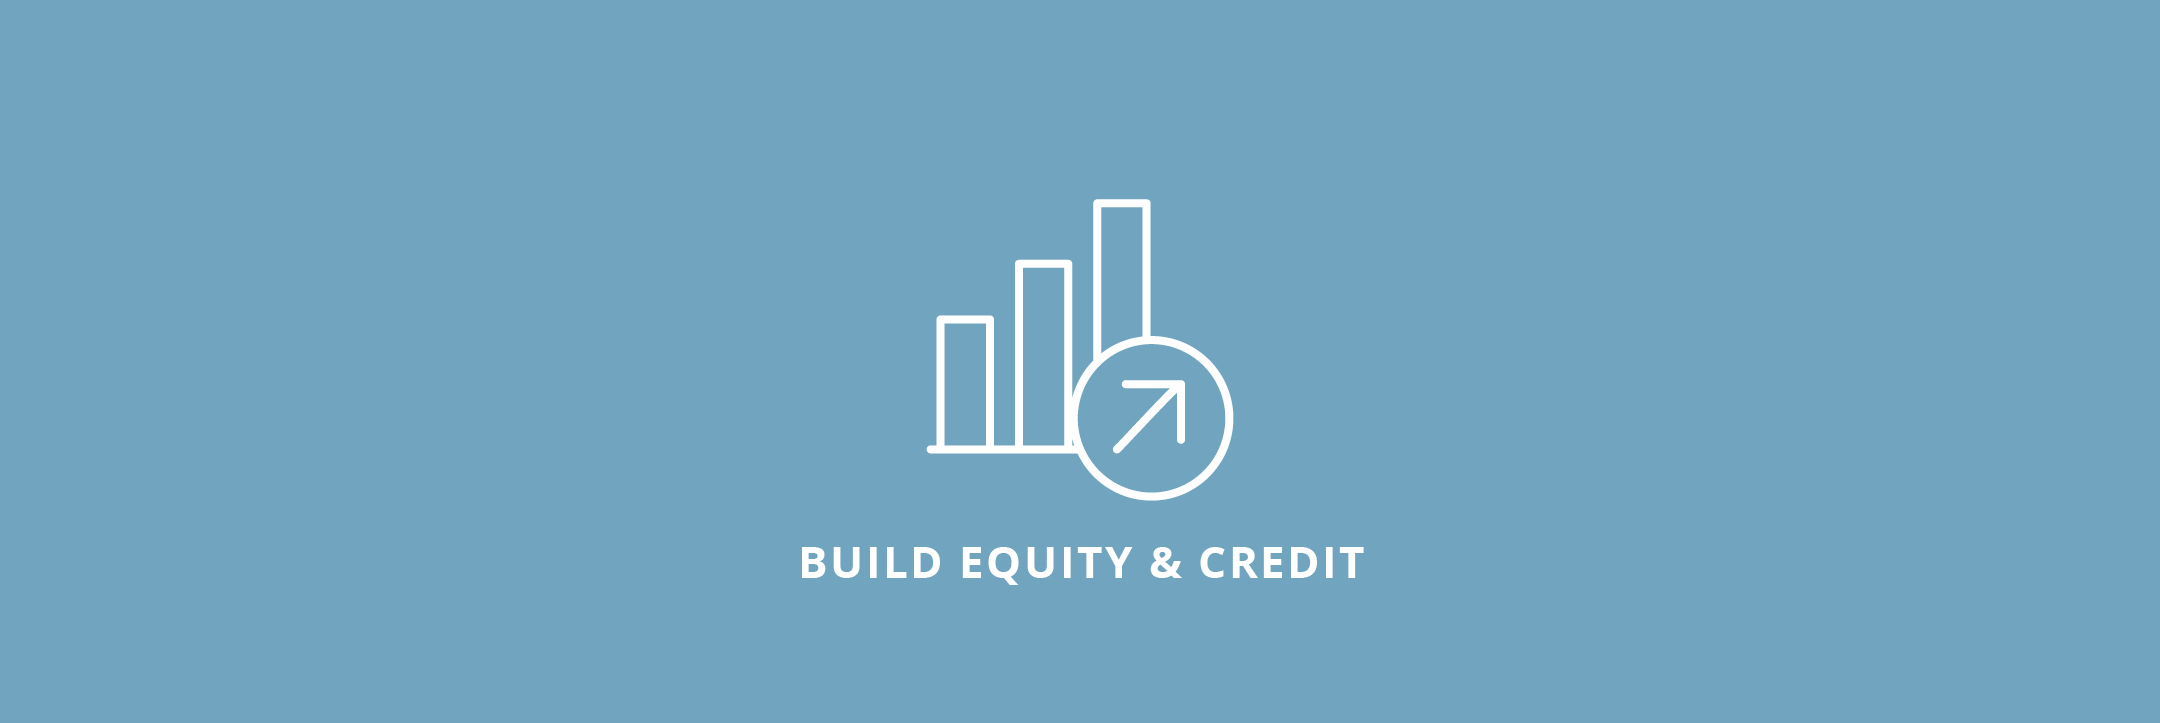 Build Equity & Credit